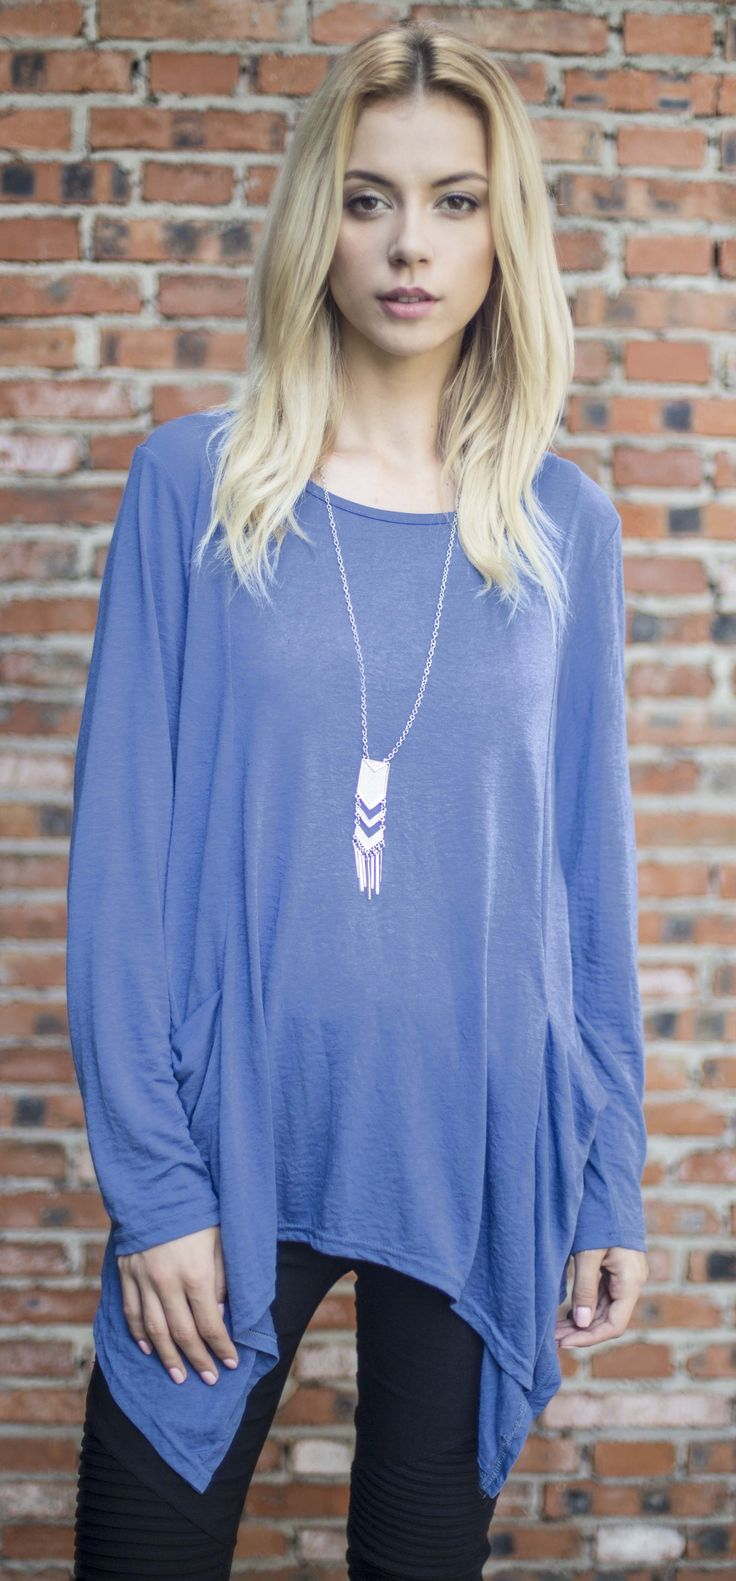 $26.99 Chicnico Casual Basic Round Neckline Pocket Blue Batwing Top